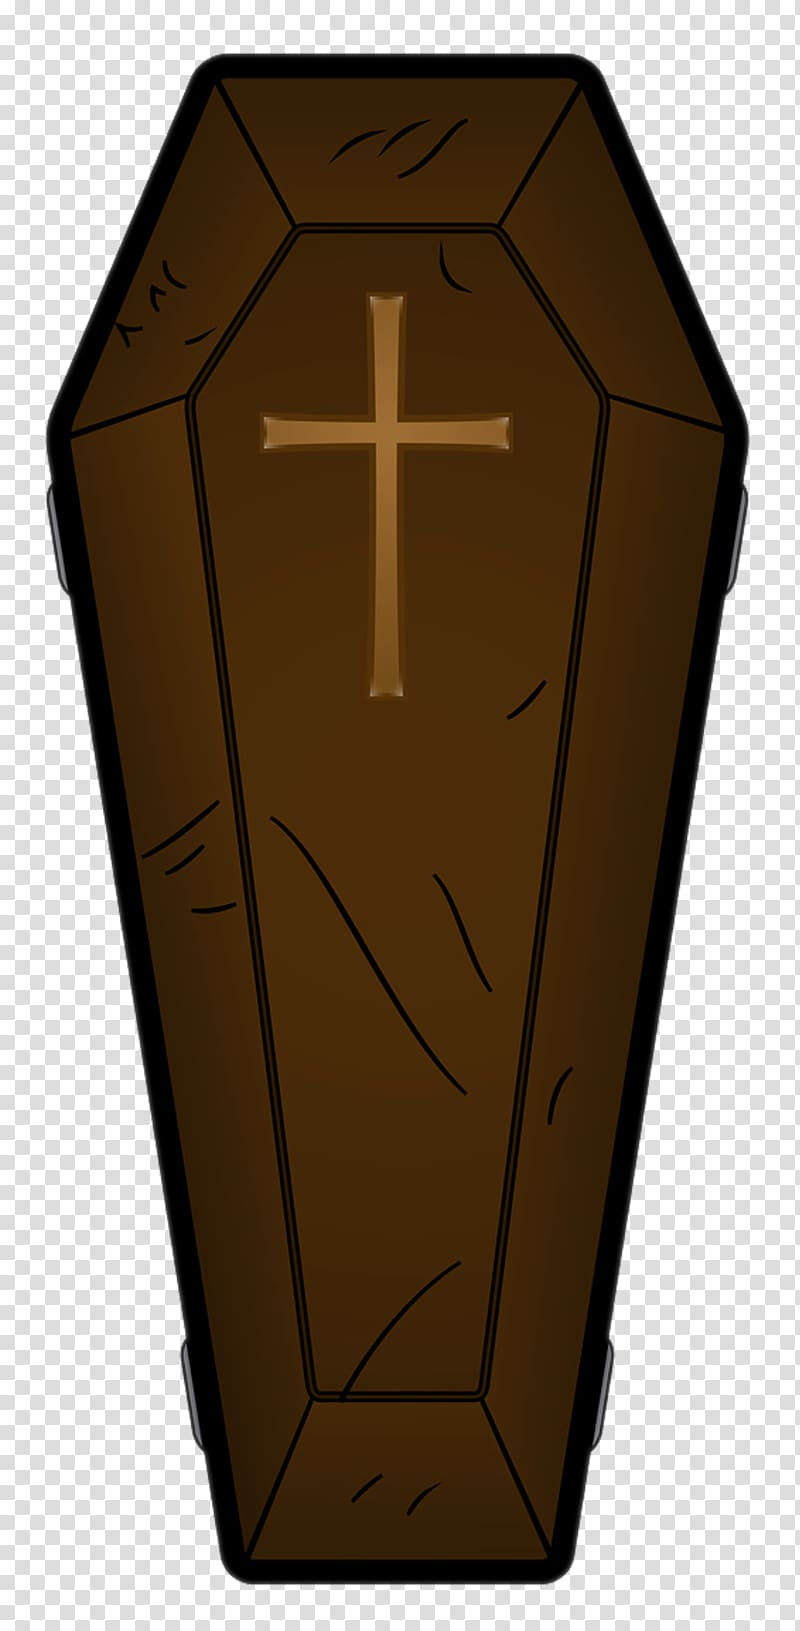 Brown and beige illustration. Coffin clipart transparent background